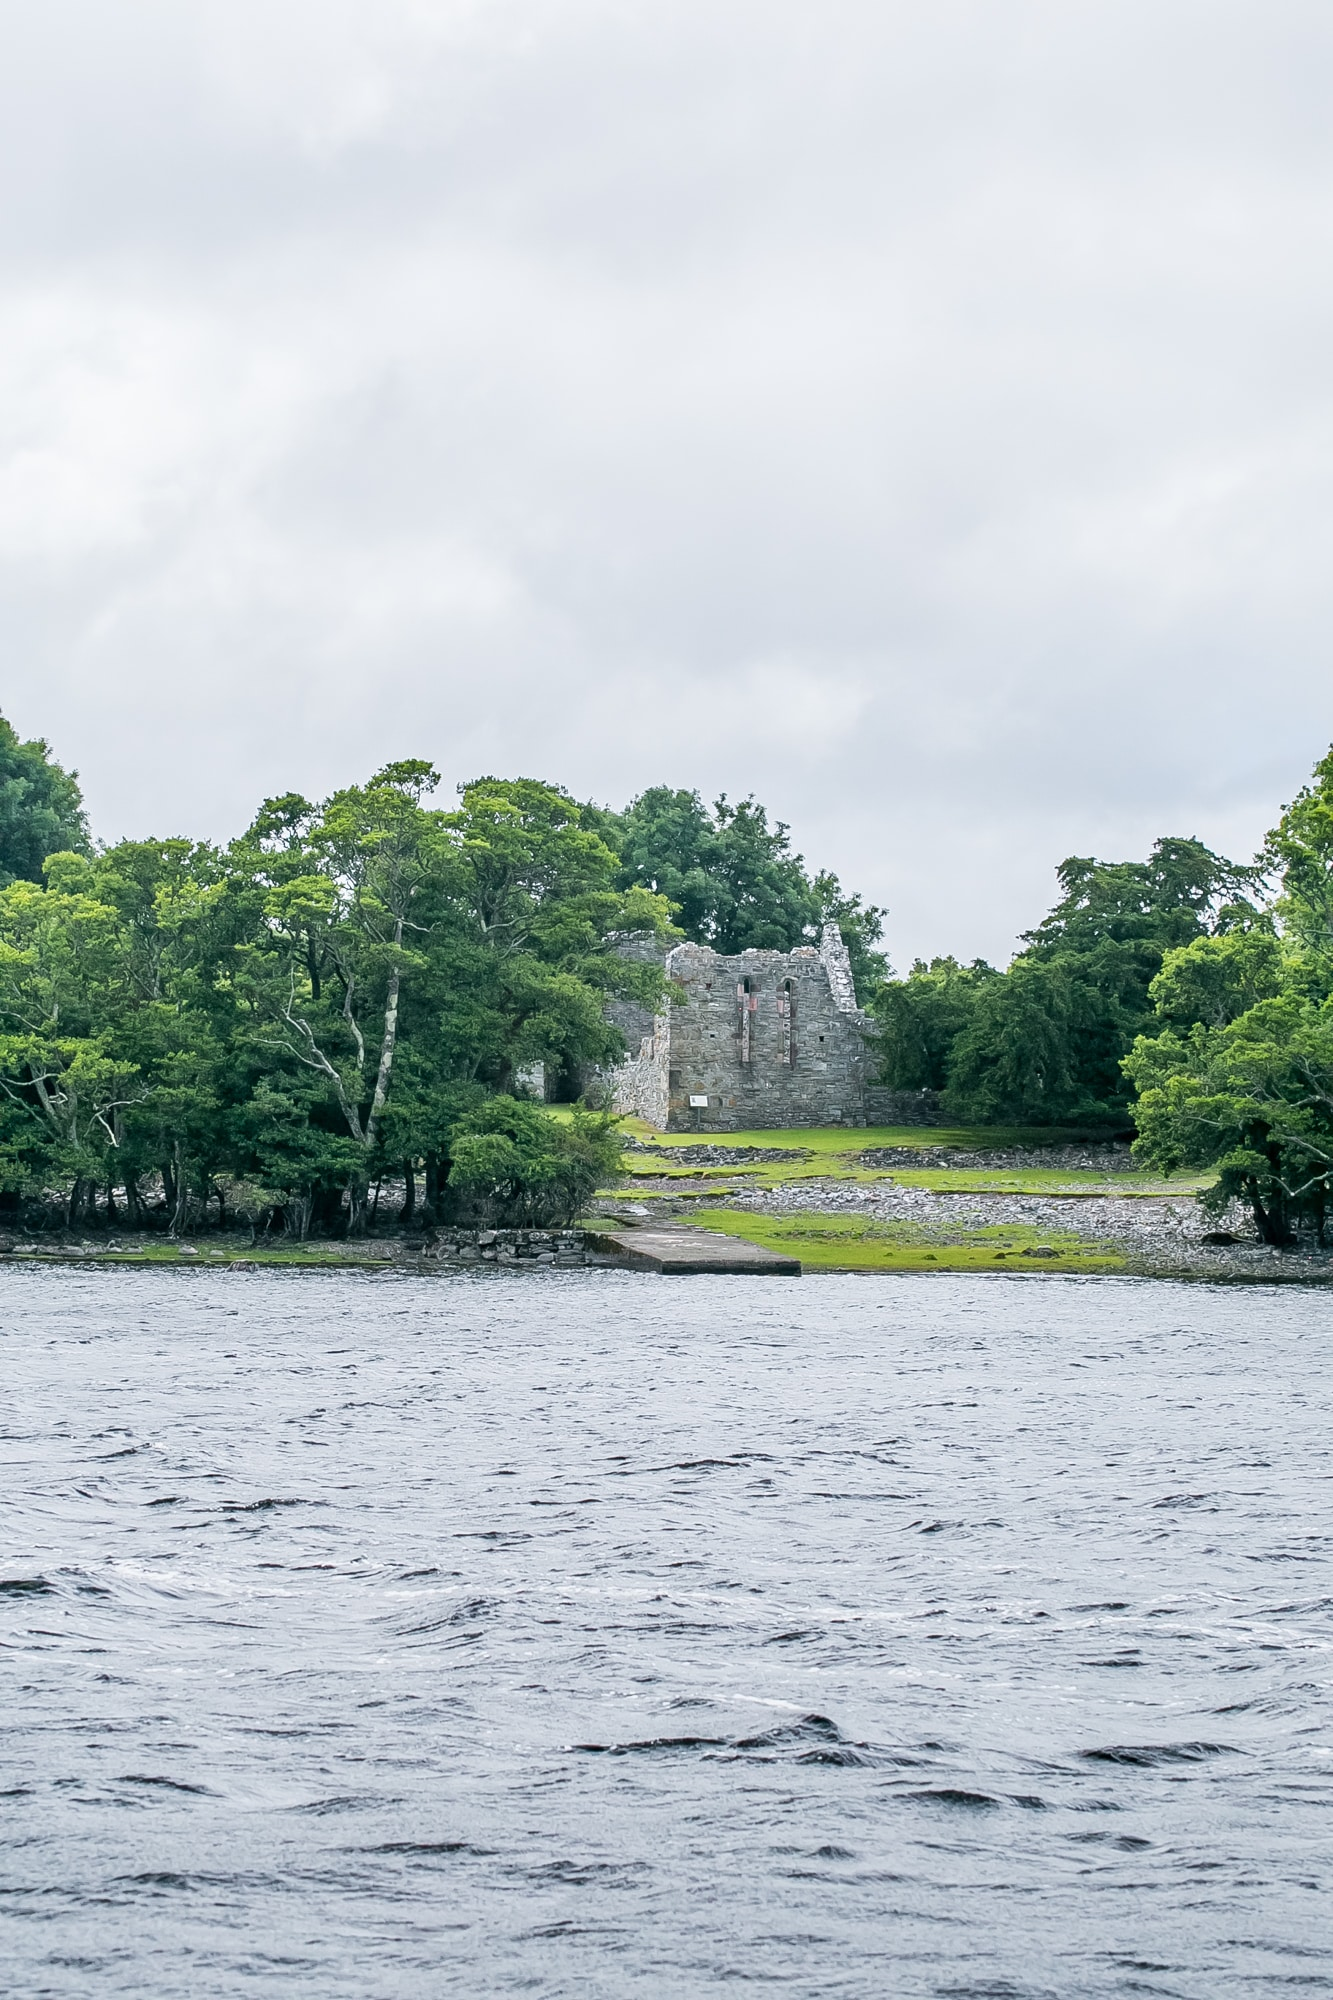 Innisfallen ruins, Killarney National Park Ireland